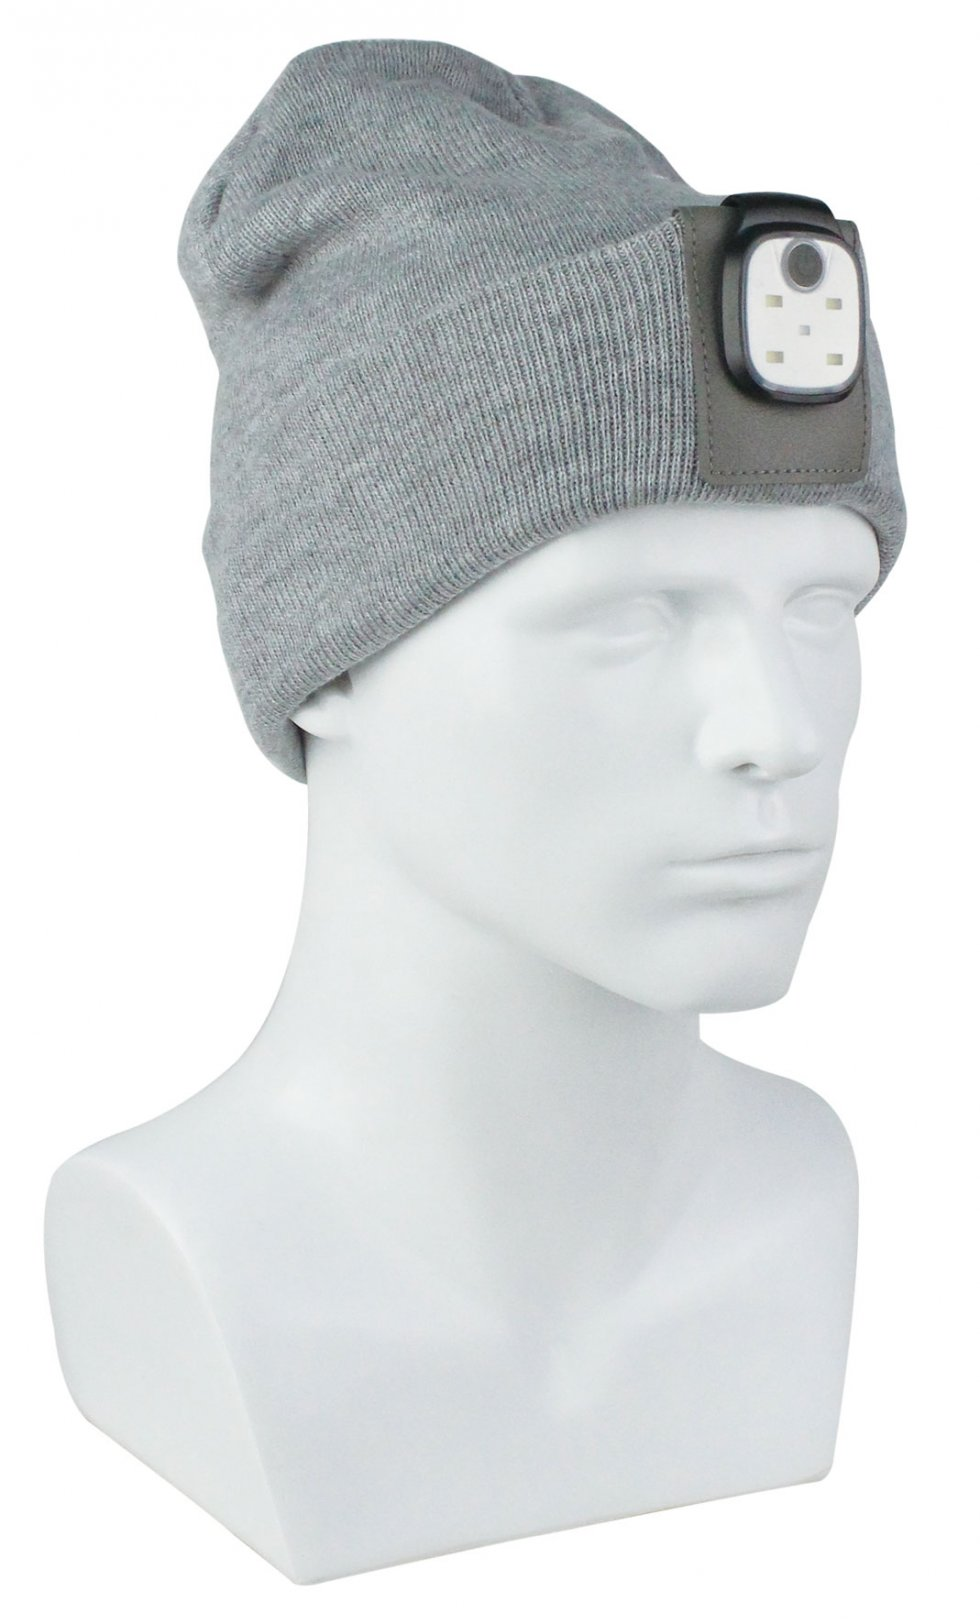 Winter hats - a ribbed hat with LED light  8dabdaaafa0